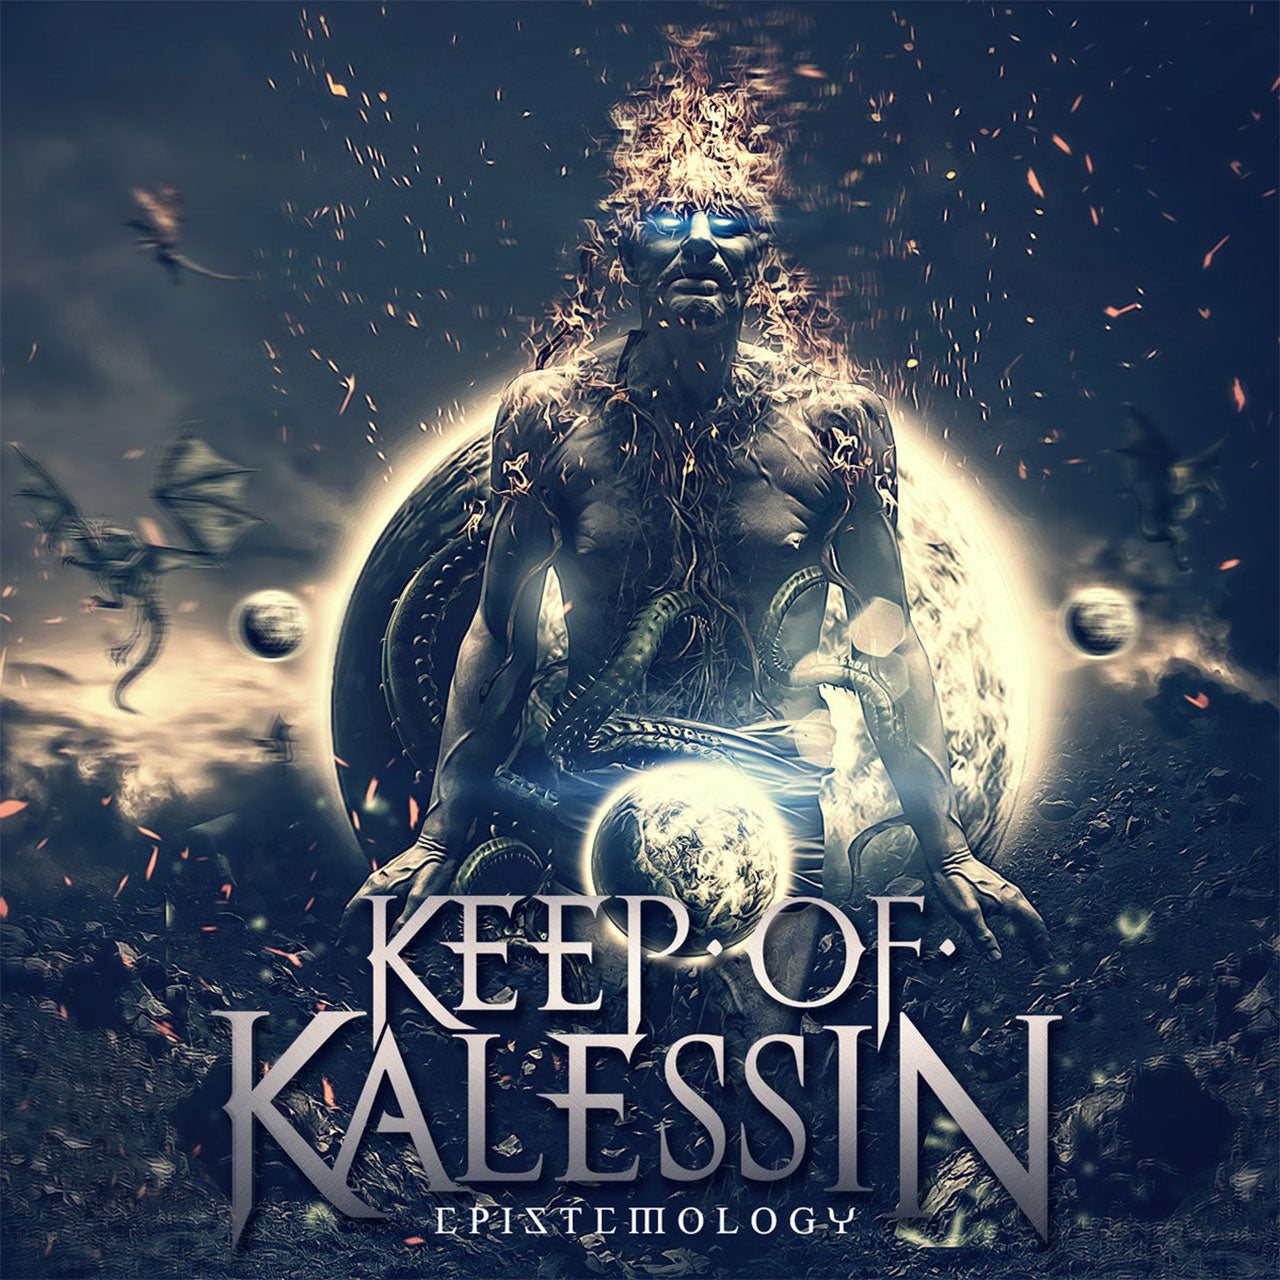 Keep of Kalessin - Epistemology (Digipak CD)